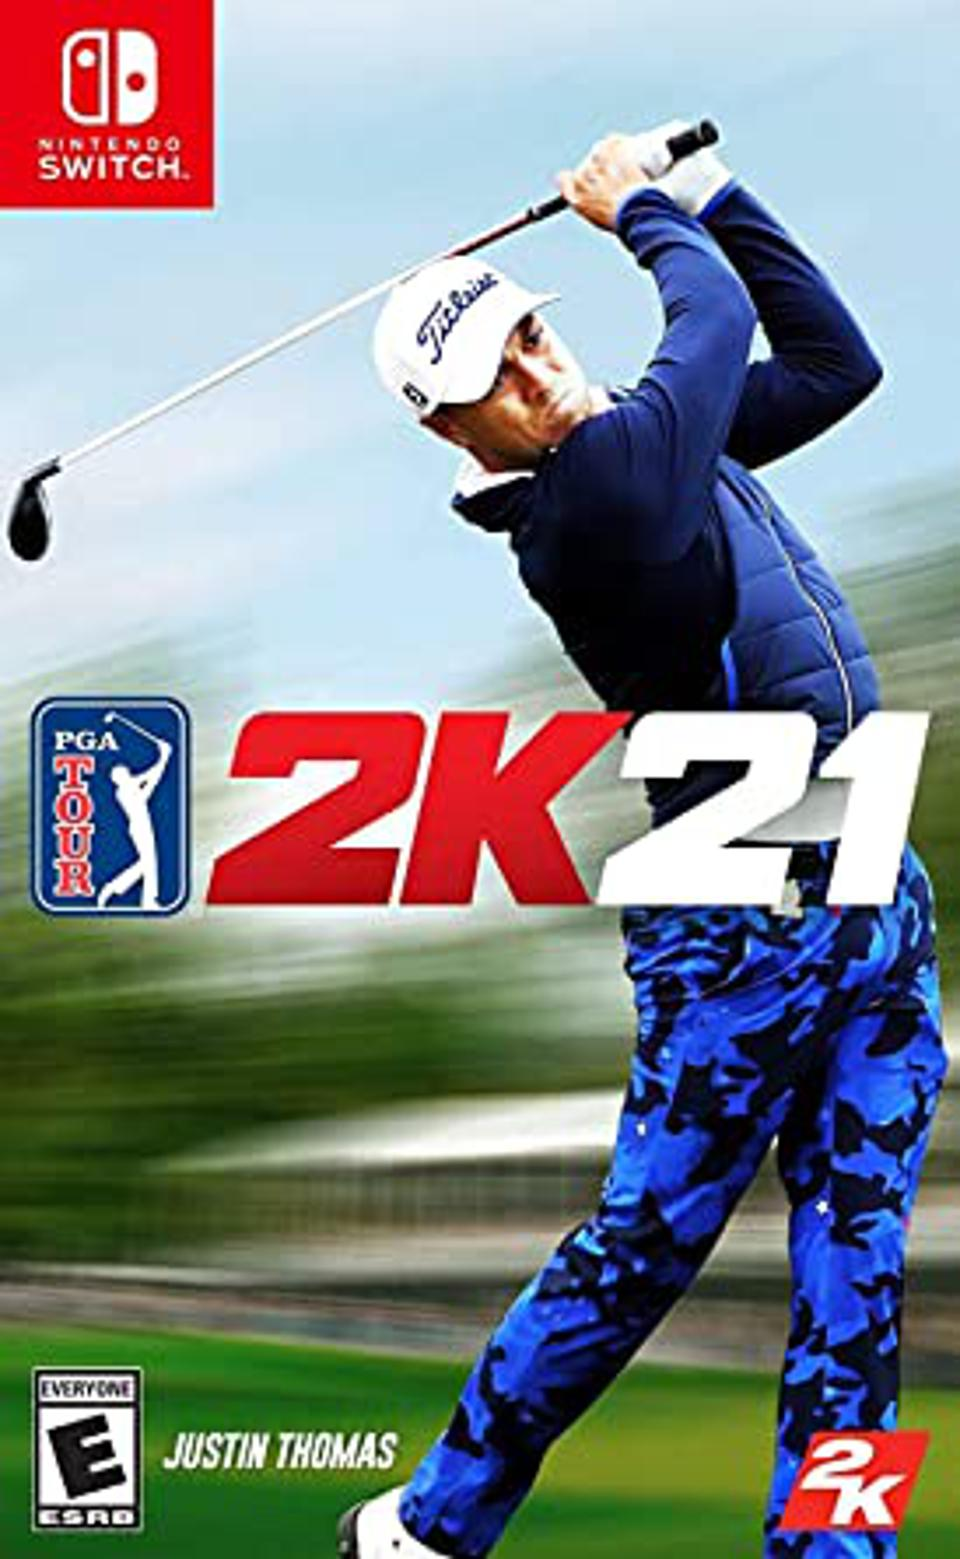 PGA Tour 2K21 for Nintendo Switch retail box art